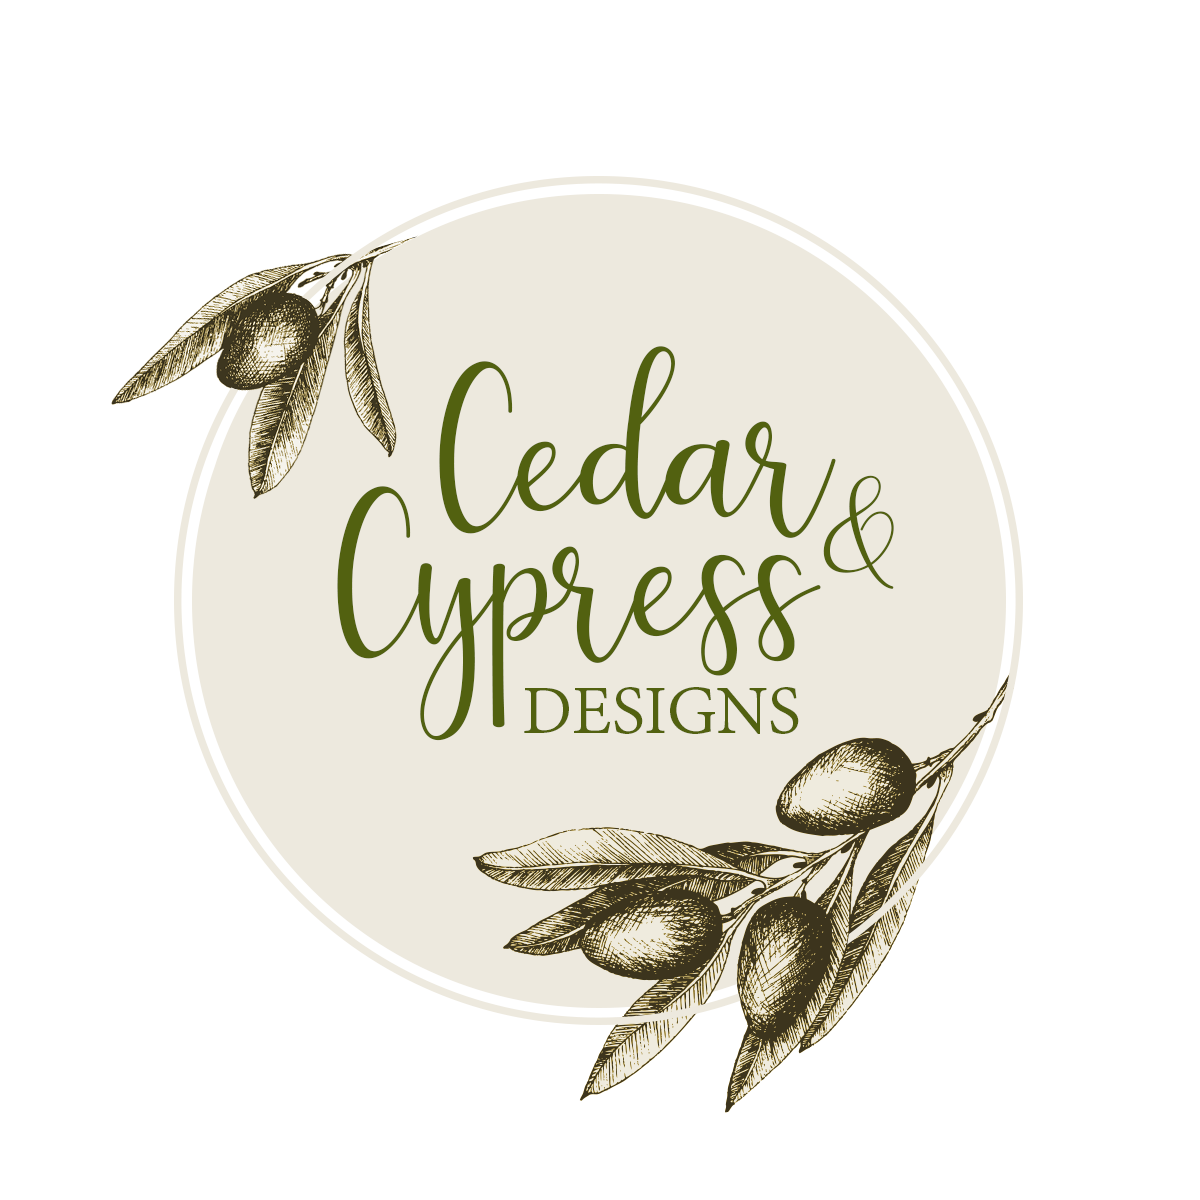 Cedar and Cypress Designs